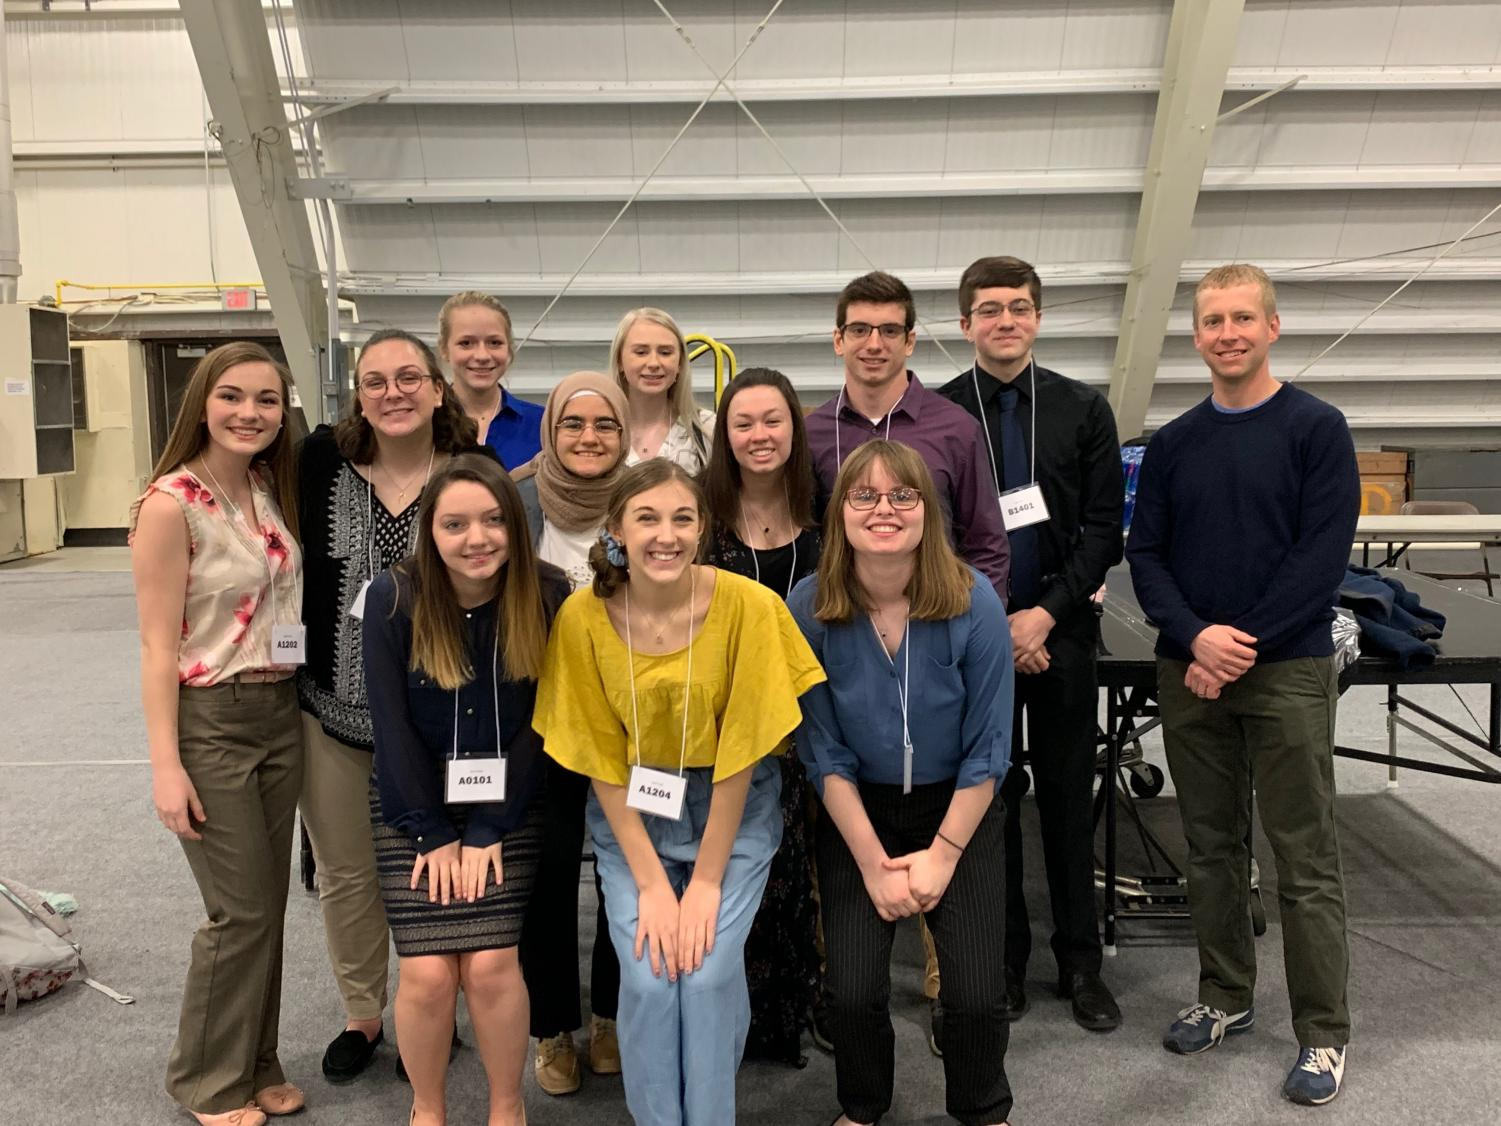 BHS SCIENCE STUDENTS PRESENT FIRST PLACE RESEARCH – The Slater